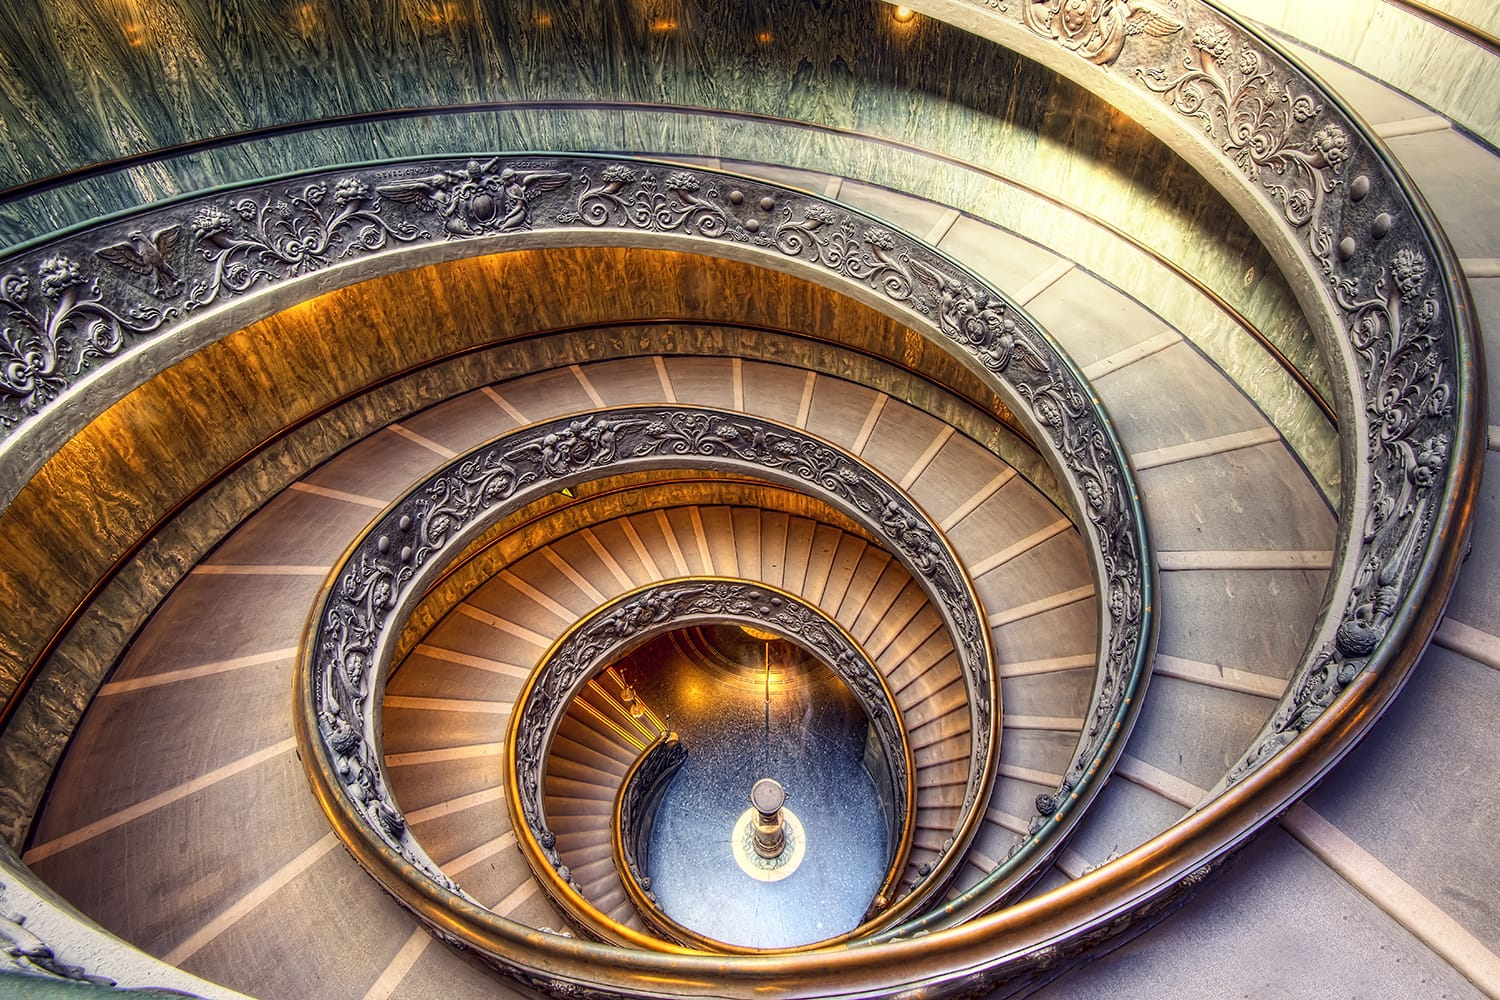 Staircase at the Vatican Museum in Rome, Italy